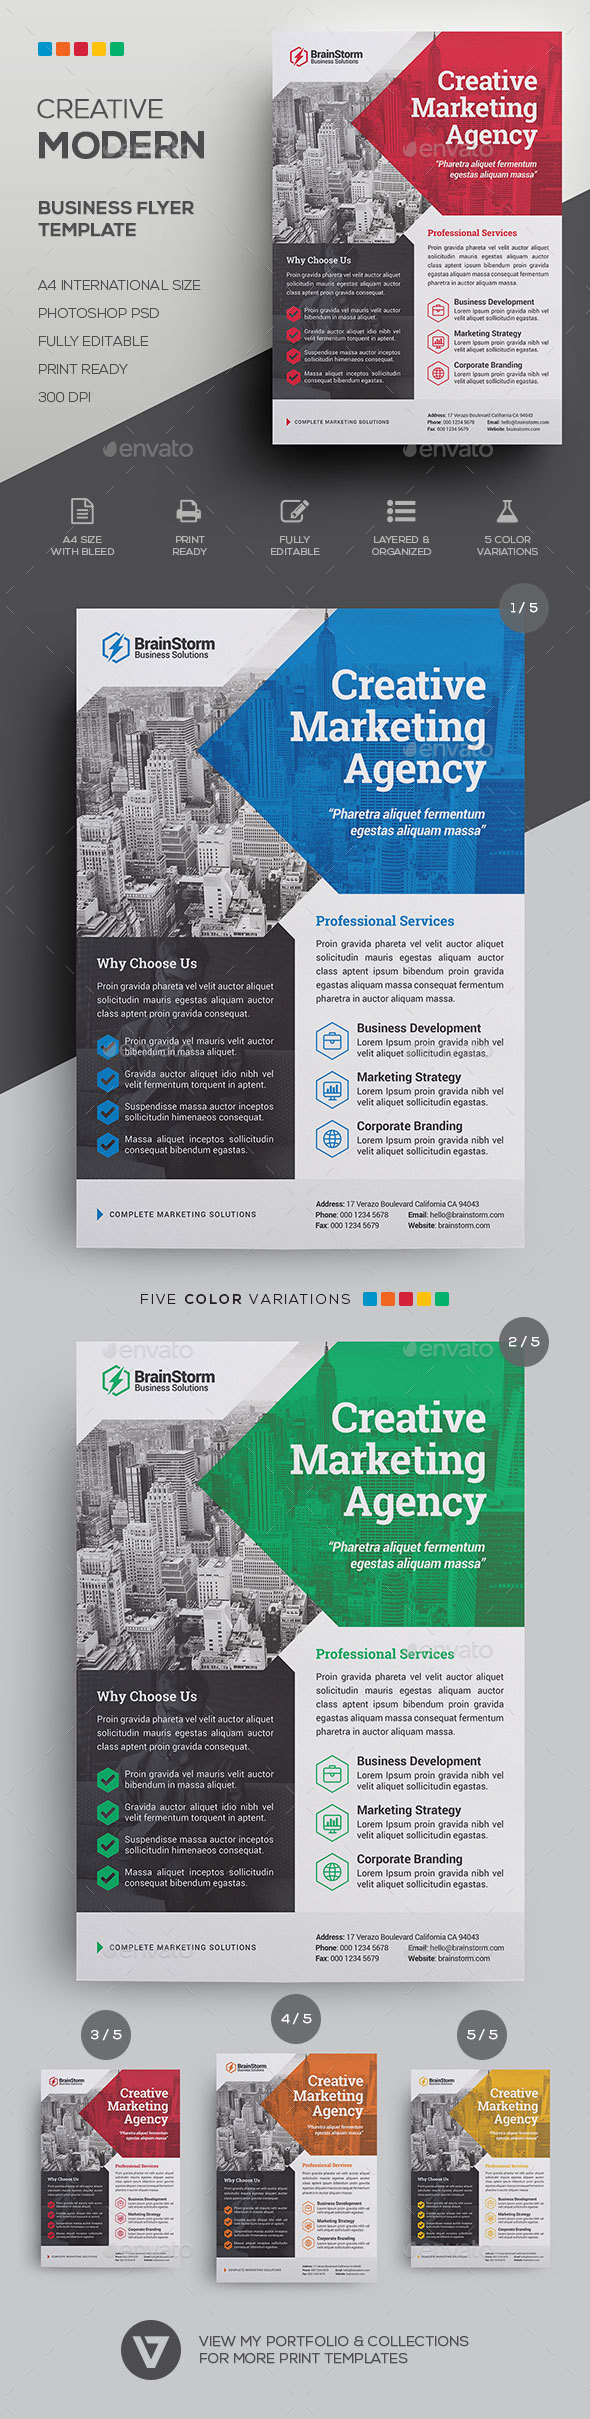 Corporate business flyer template by verazo graphicriver corporate business flyer template corporate flyers cheaphphosting Images